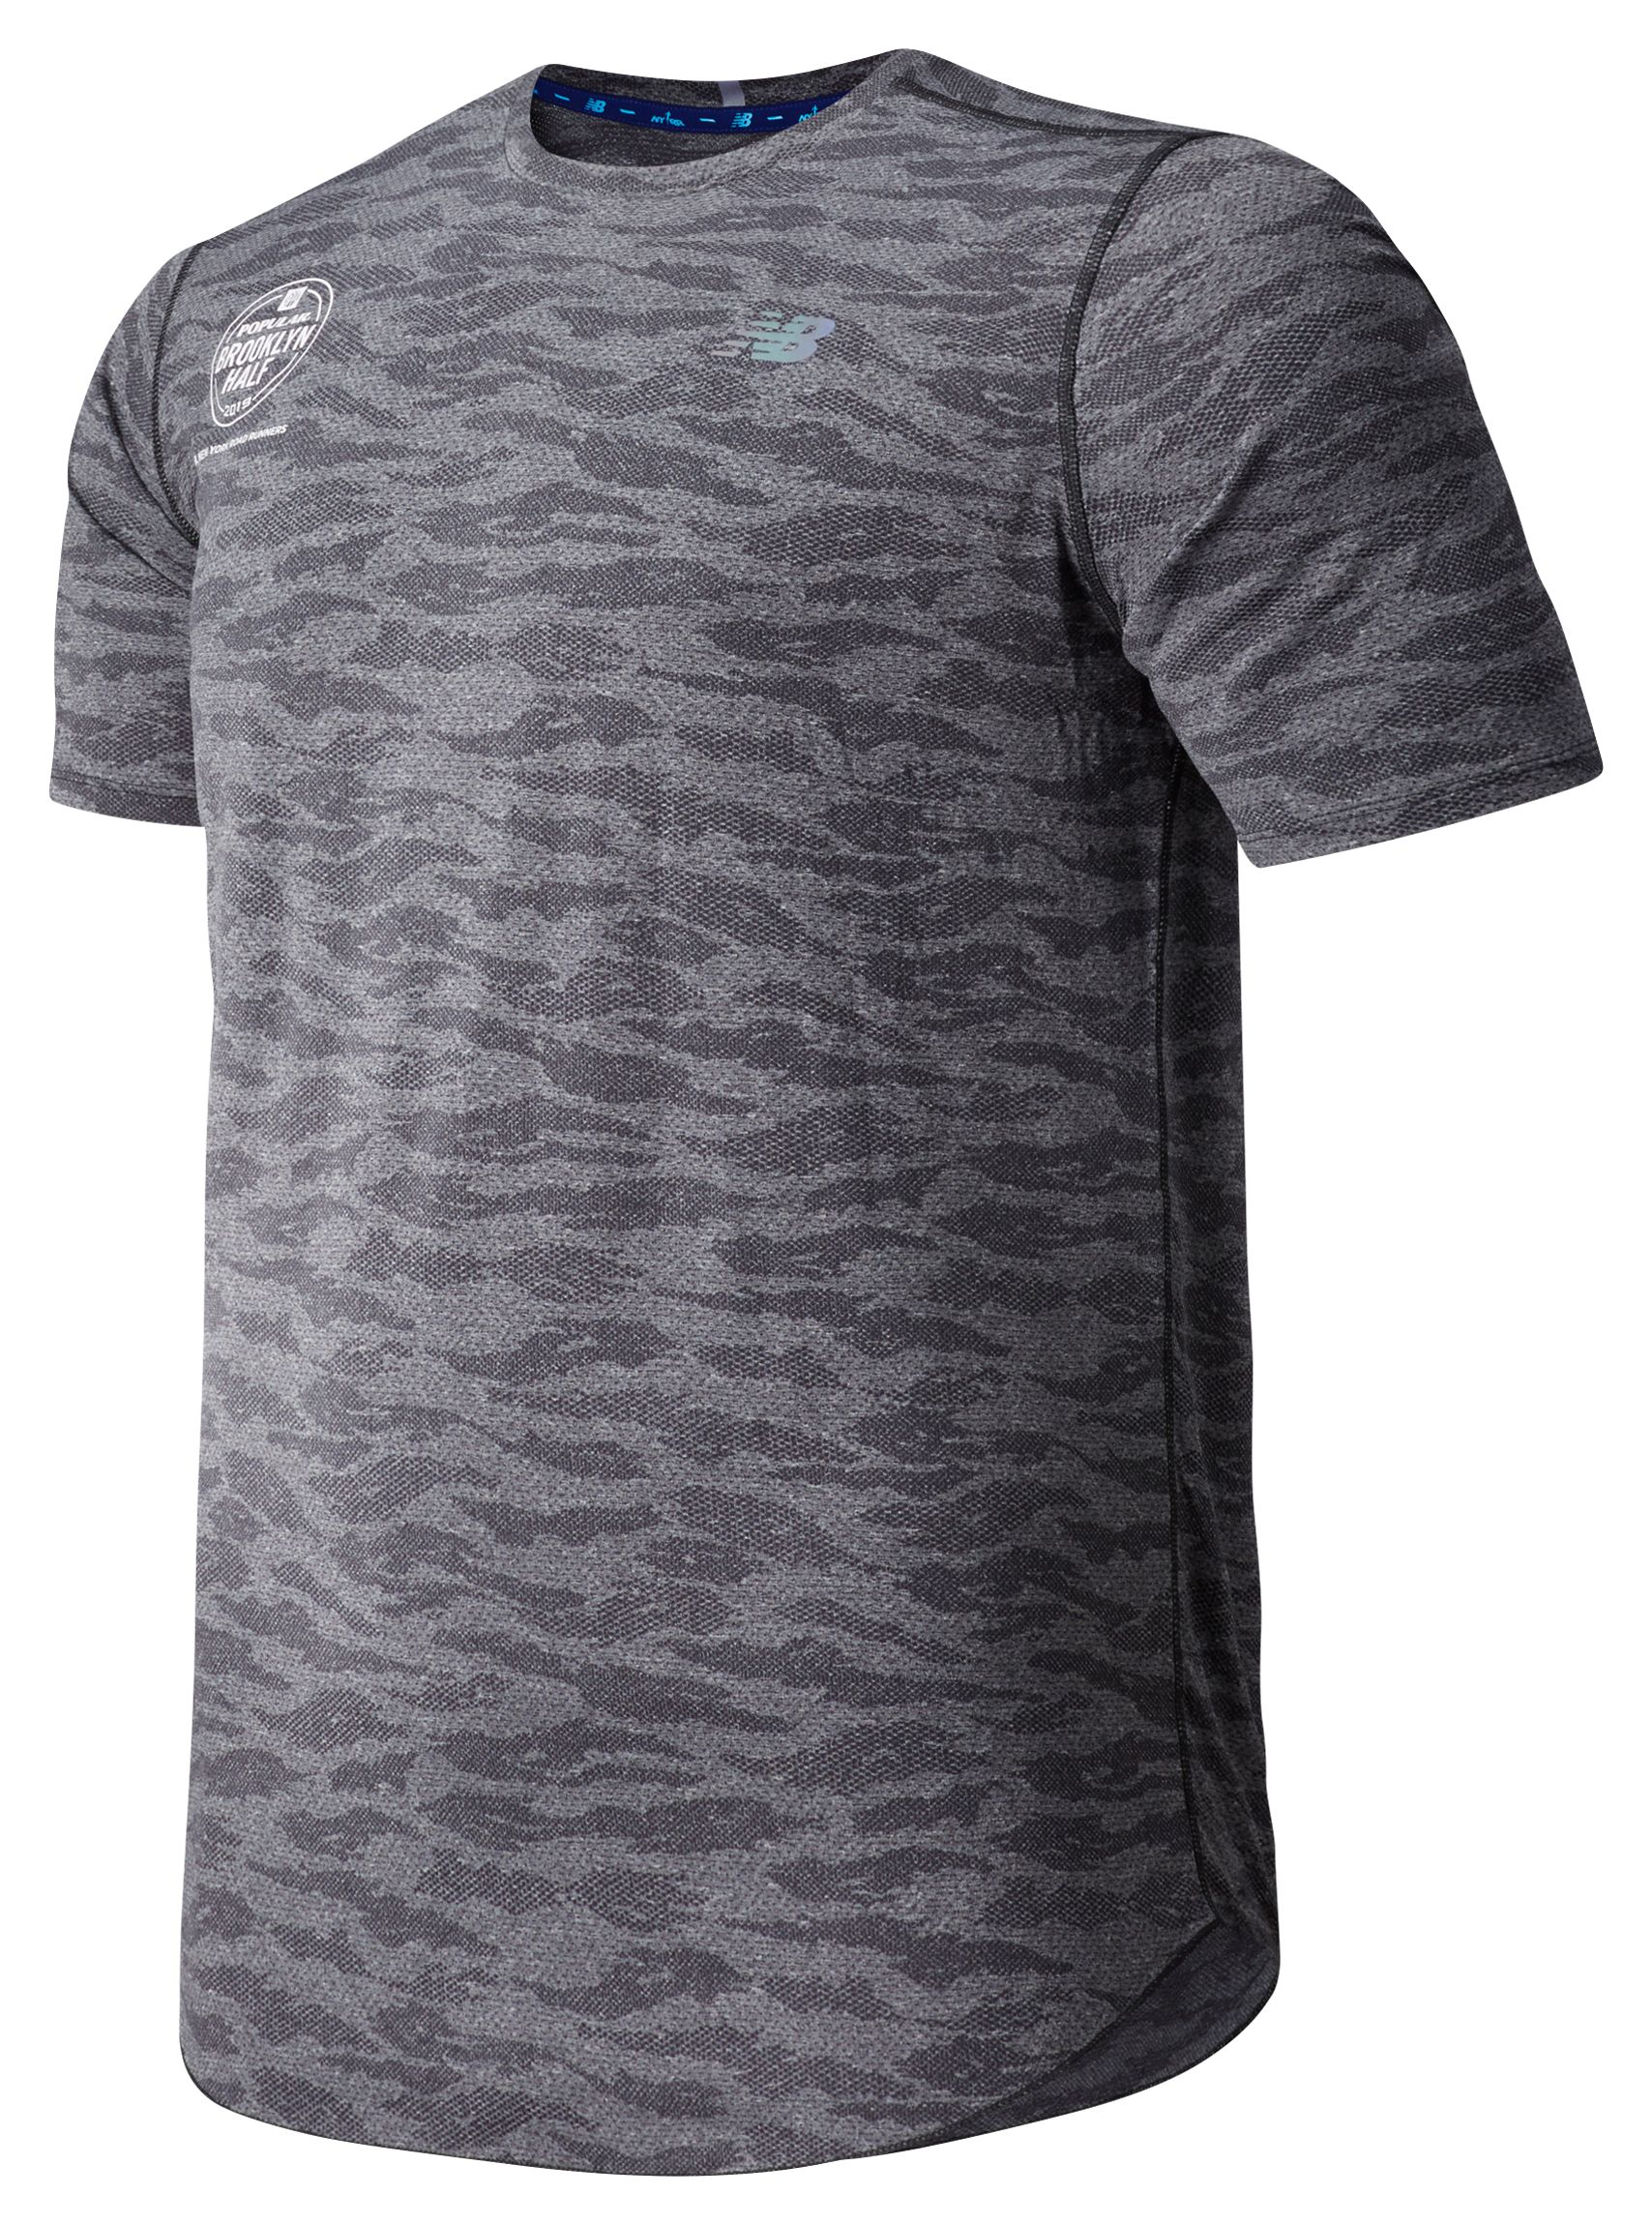 Men's Brooklyn Half Q Speed Breathe Short Sleeve